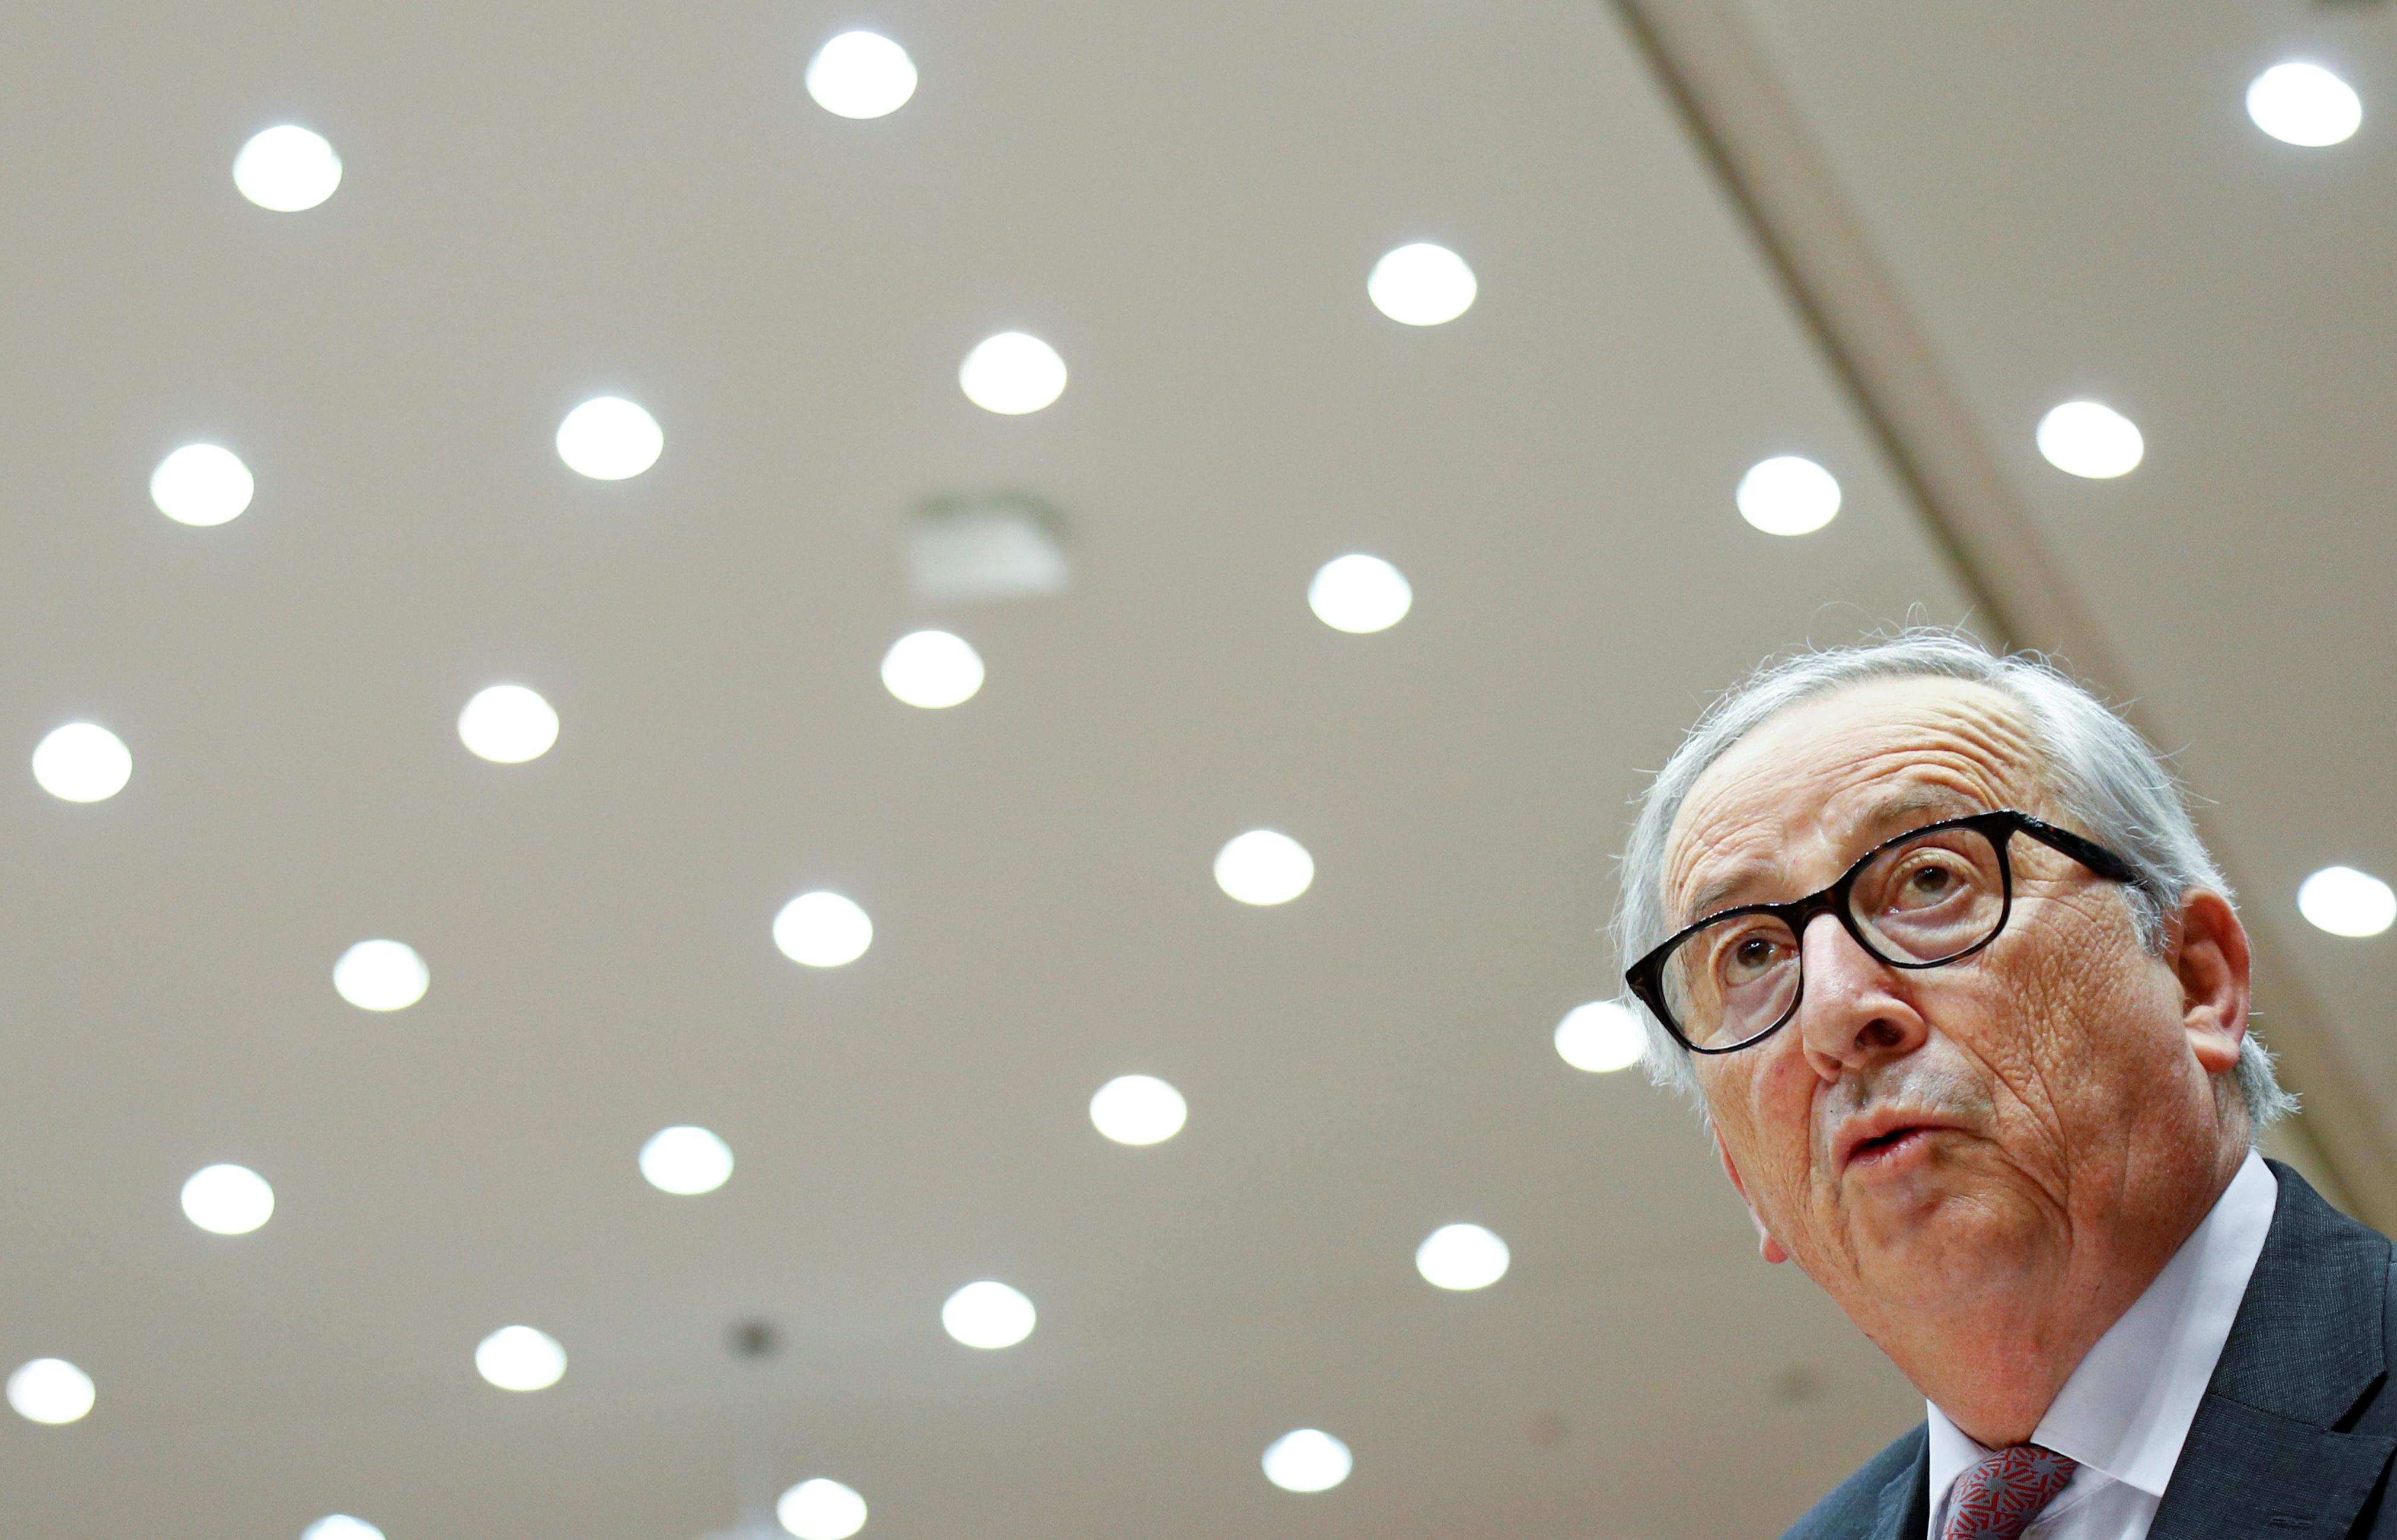 No one in Europe would oppose extension to Brexit talks - Juncker